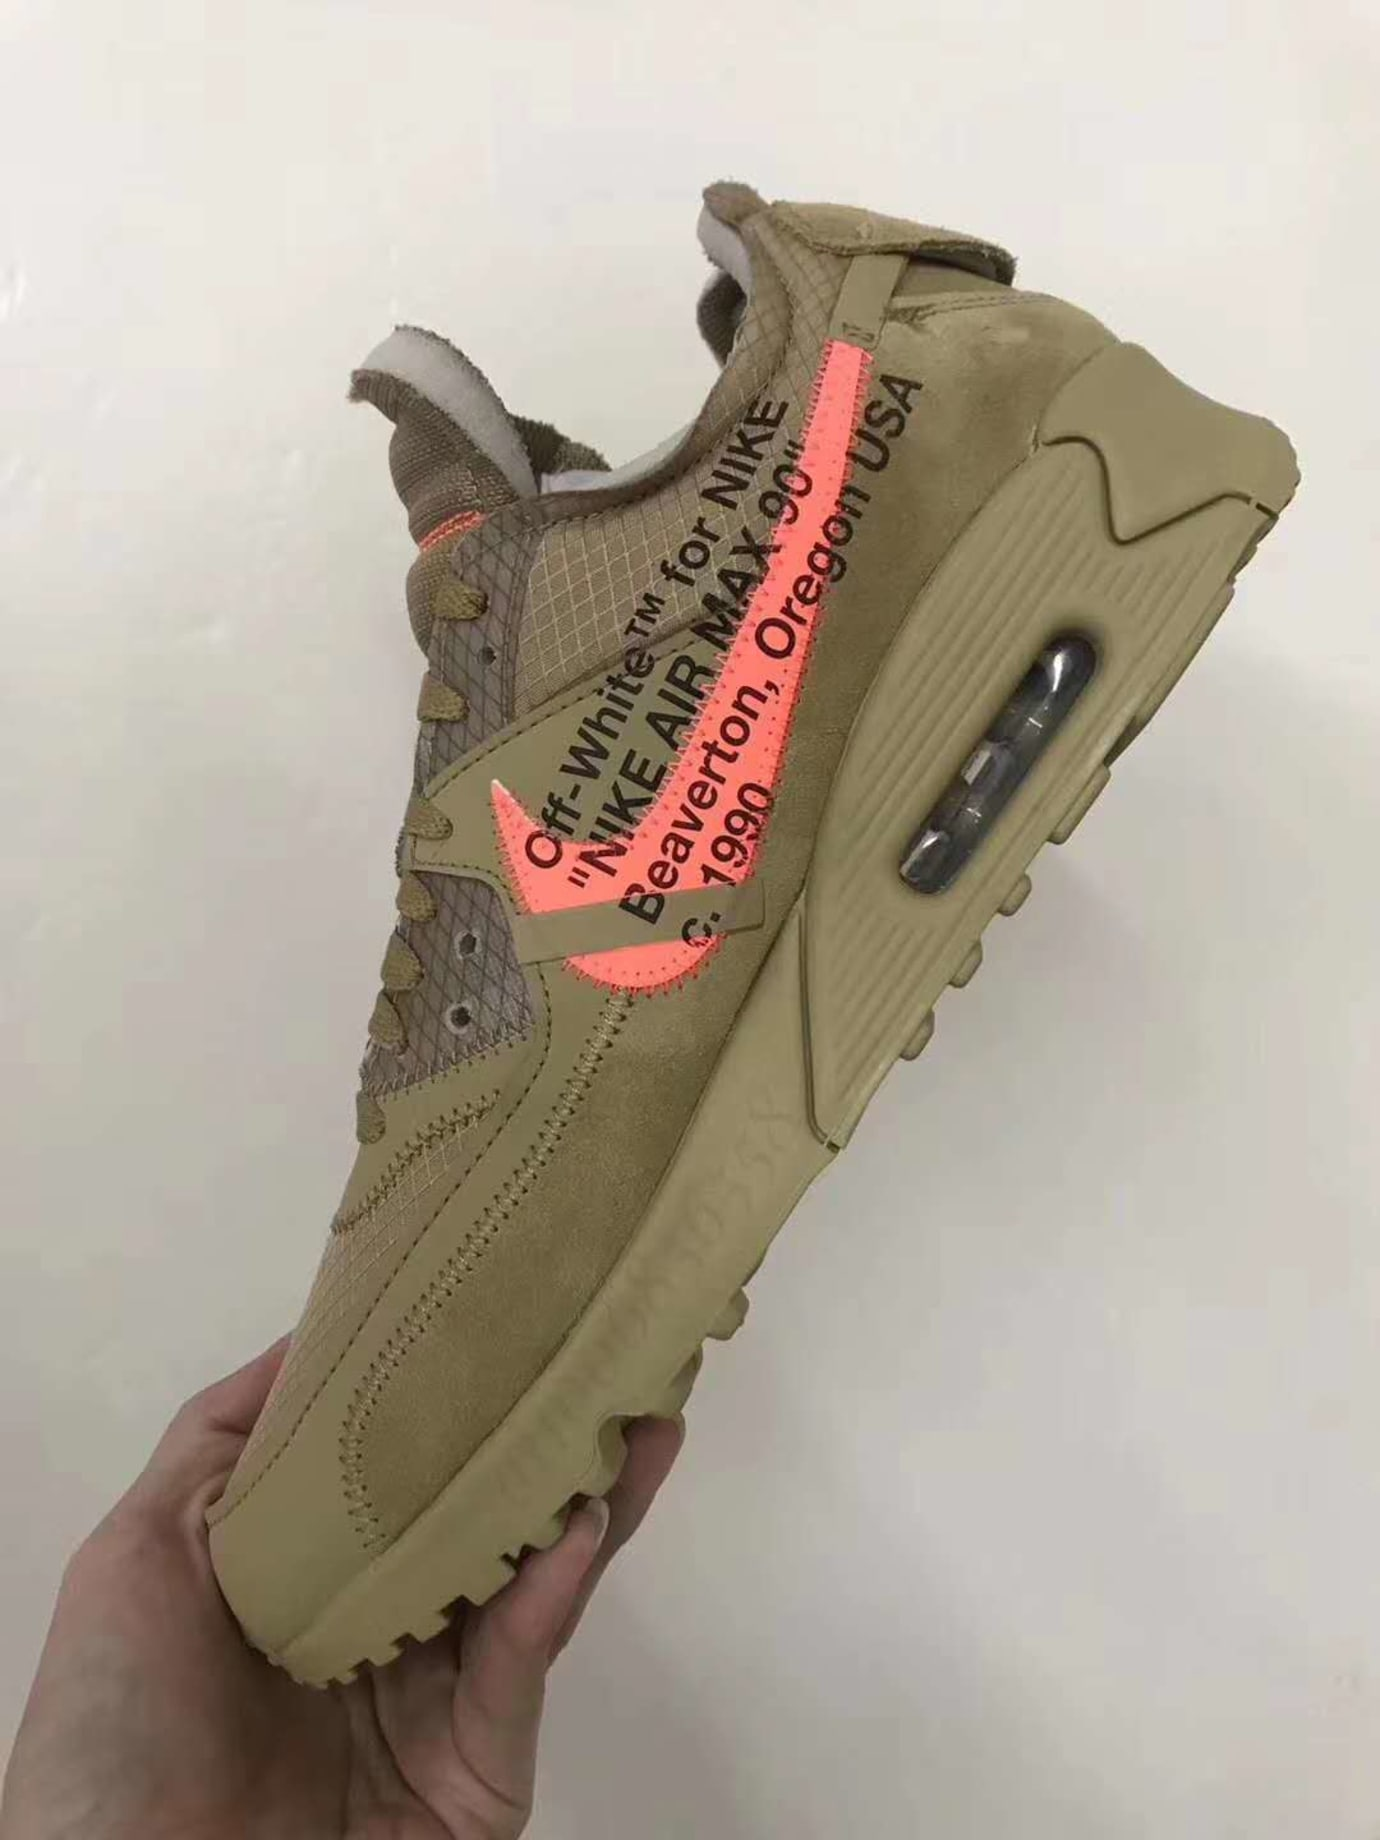 off-white-nike-air-max-90-desert-ore-release-date-aa7293-200-medial